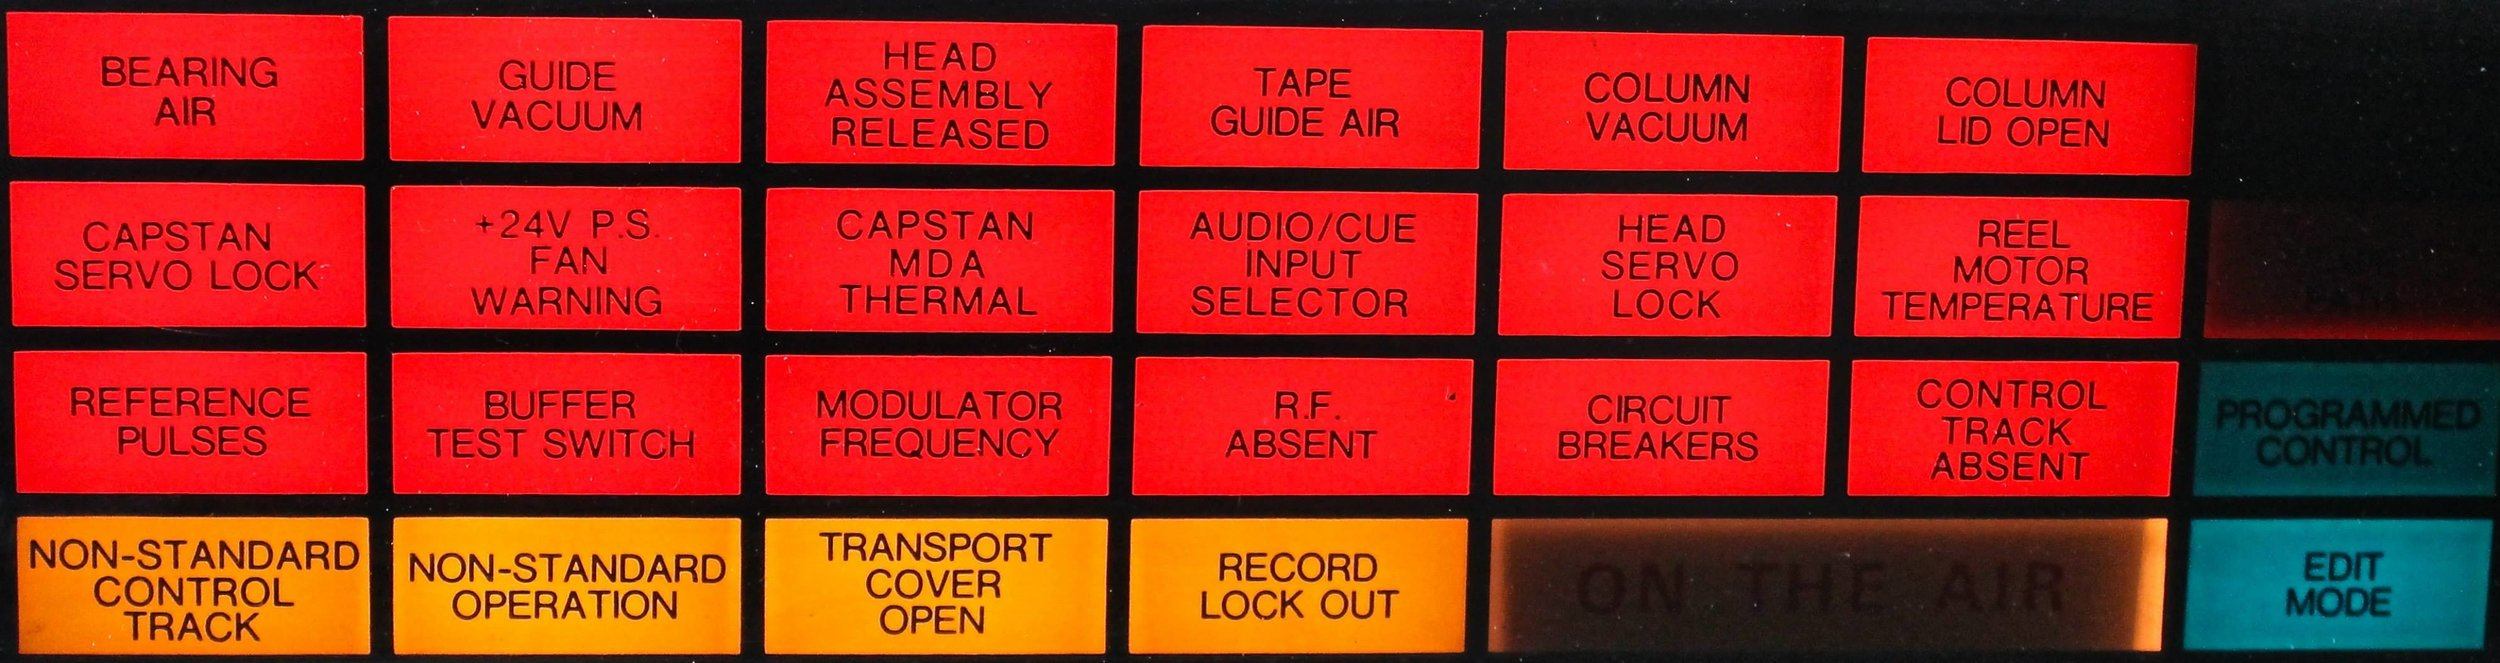 AVR-1 warning light panel